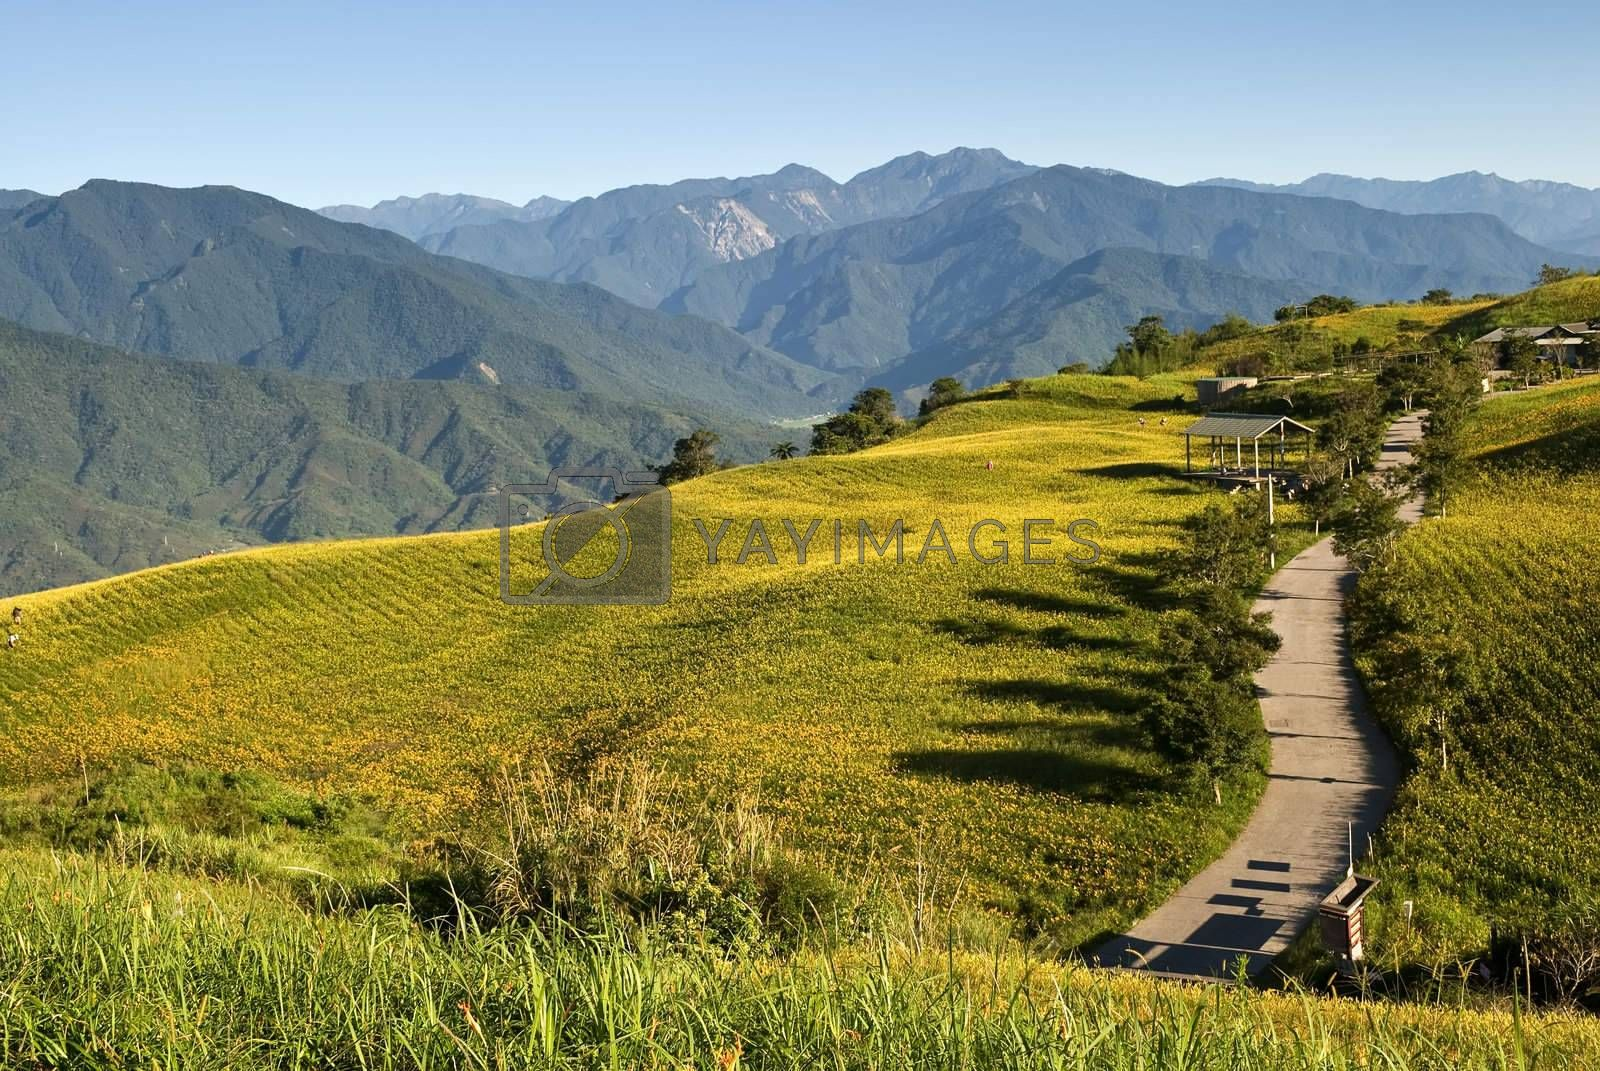 Landscape of buildings and road in mountain under blue sky.